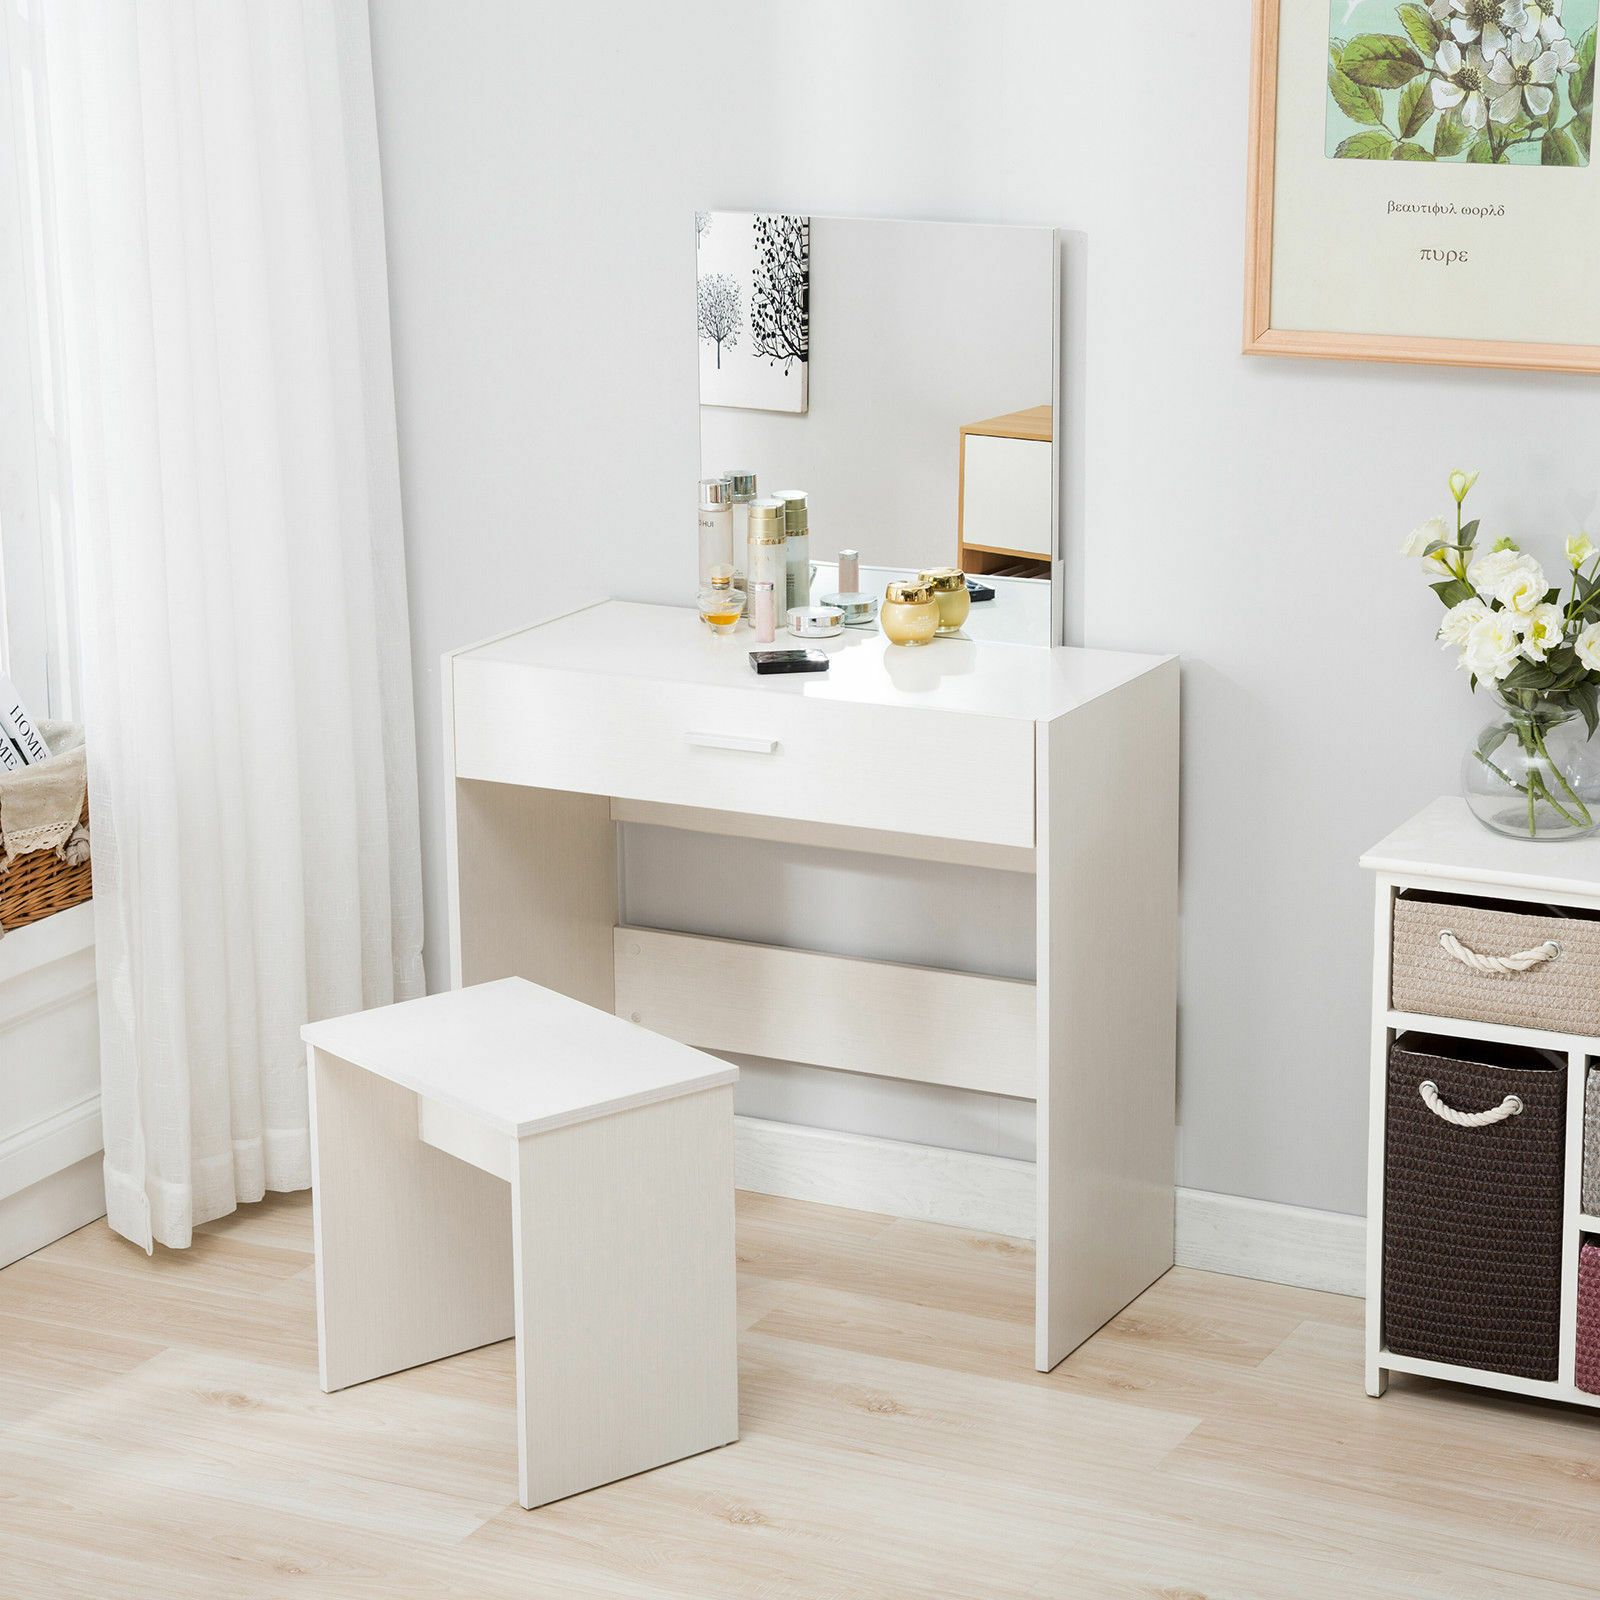 95 Reference Of Bathroom Vanity Makeup Drawer In 2020 White